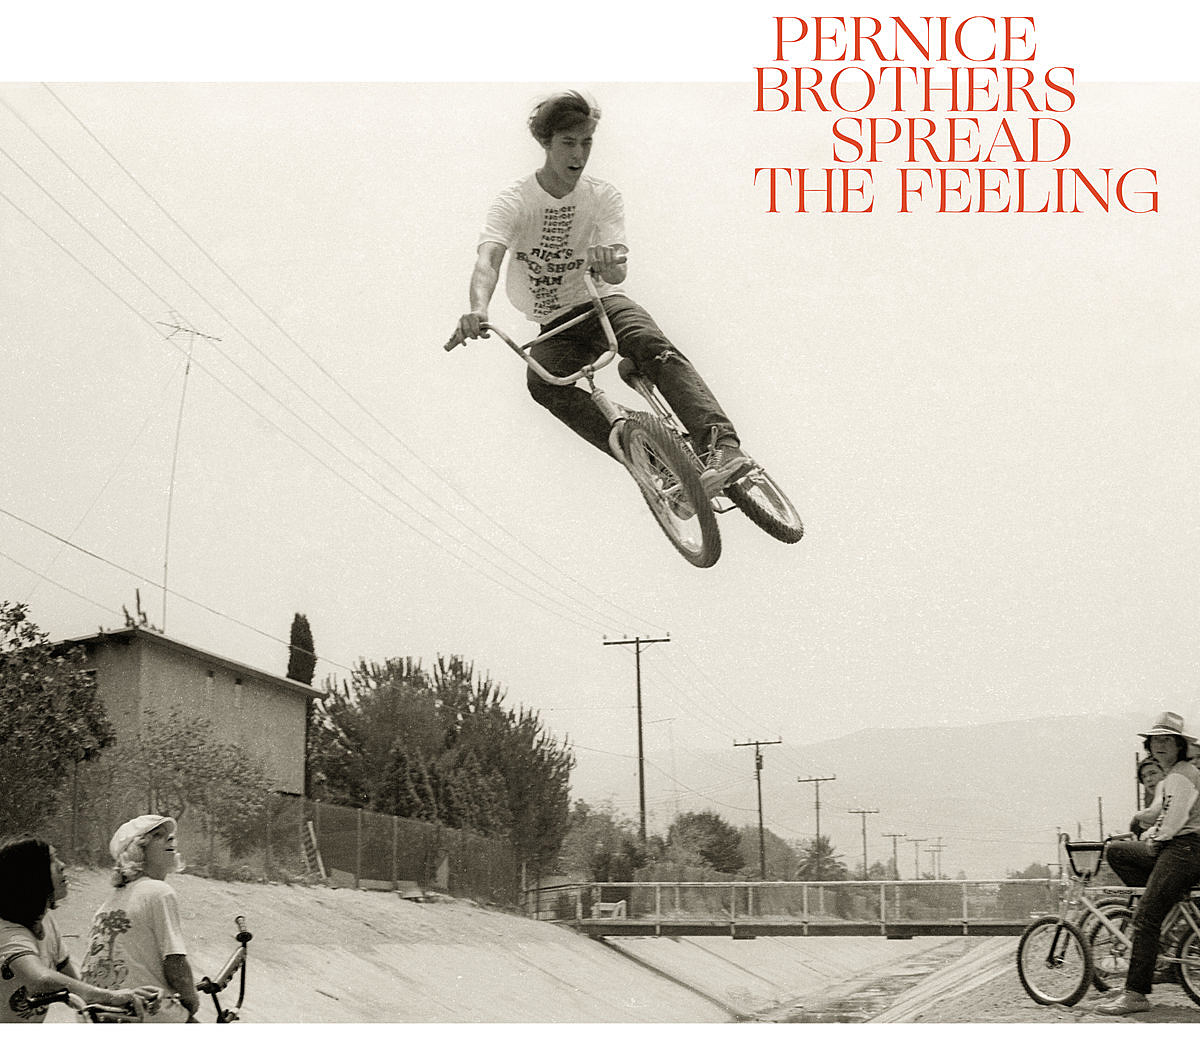 pernice-brothers